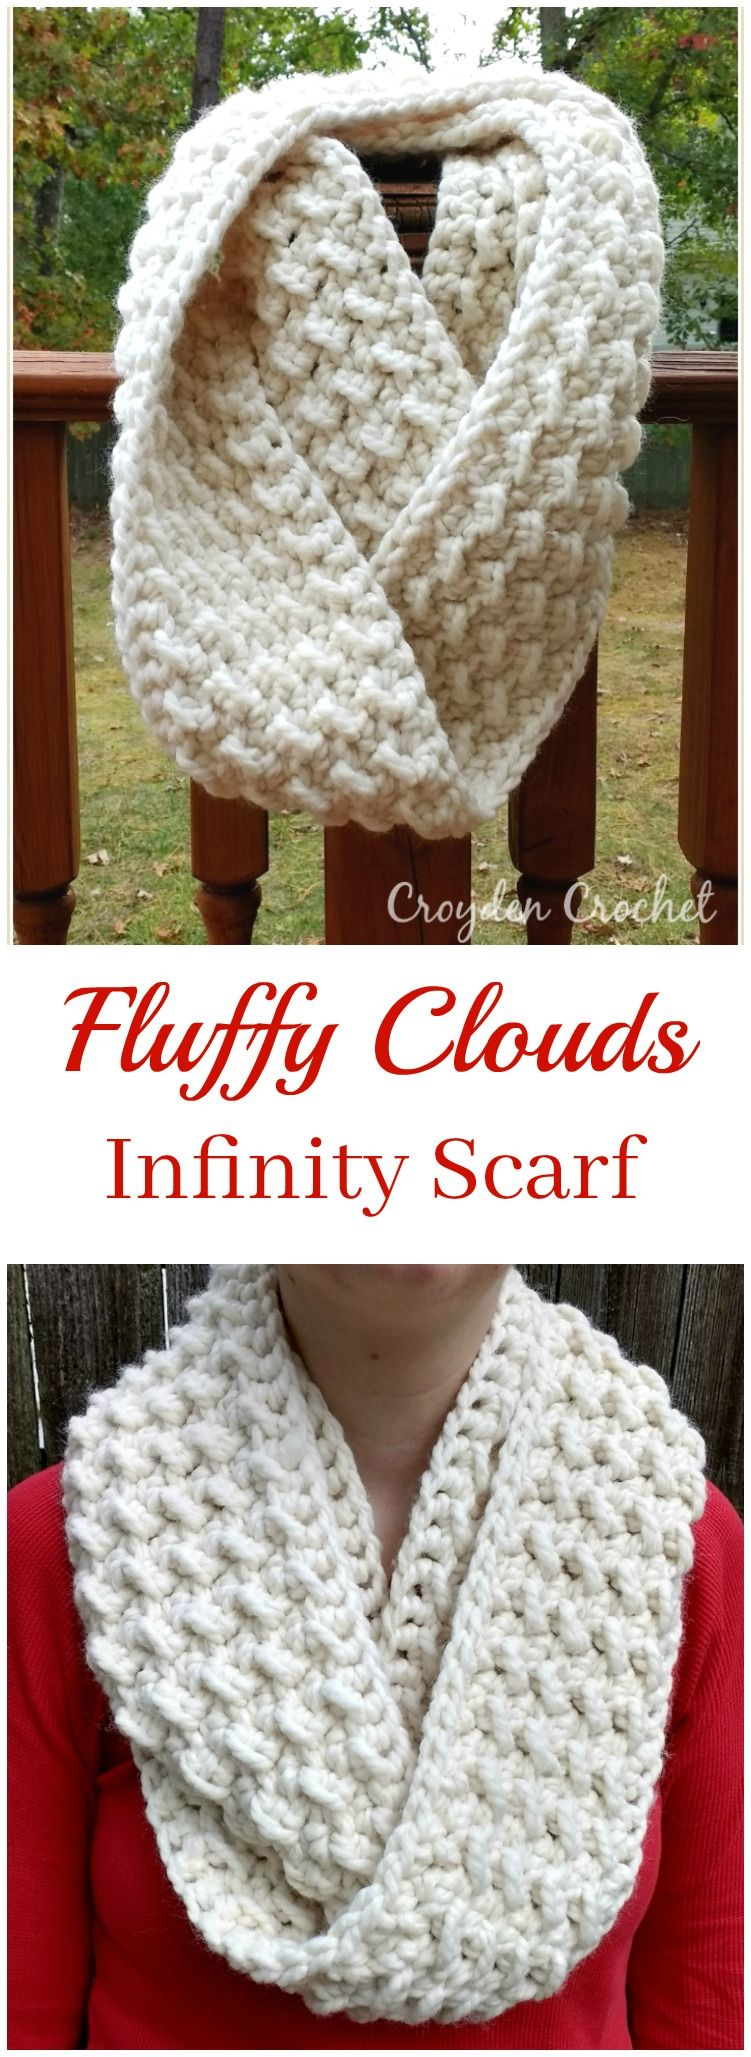 Fluffy Clouds Infinity Scarf | Pinterest | Chunky infinity scarves ...